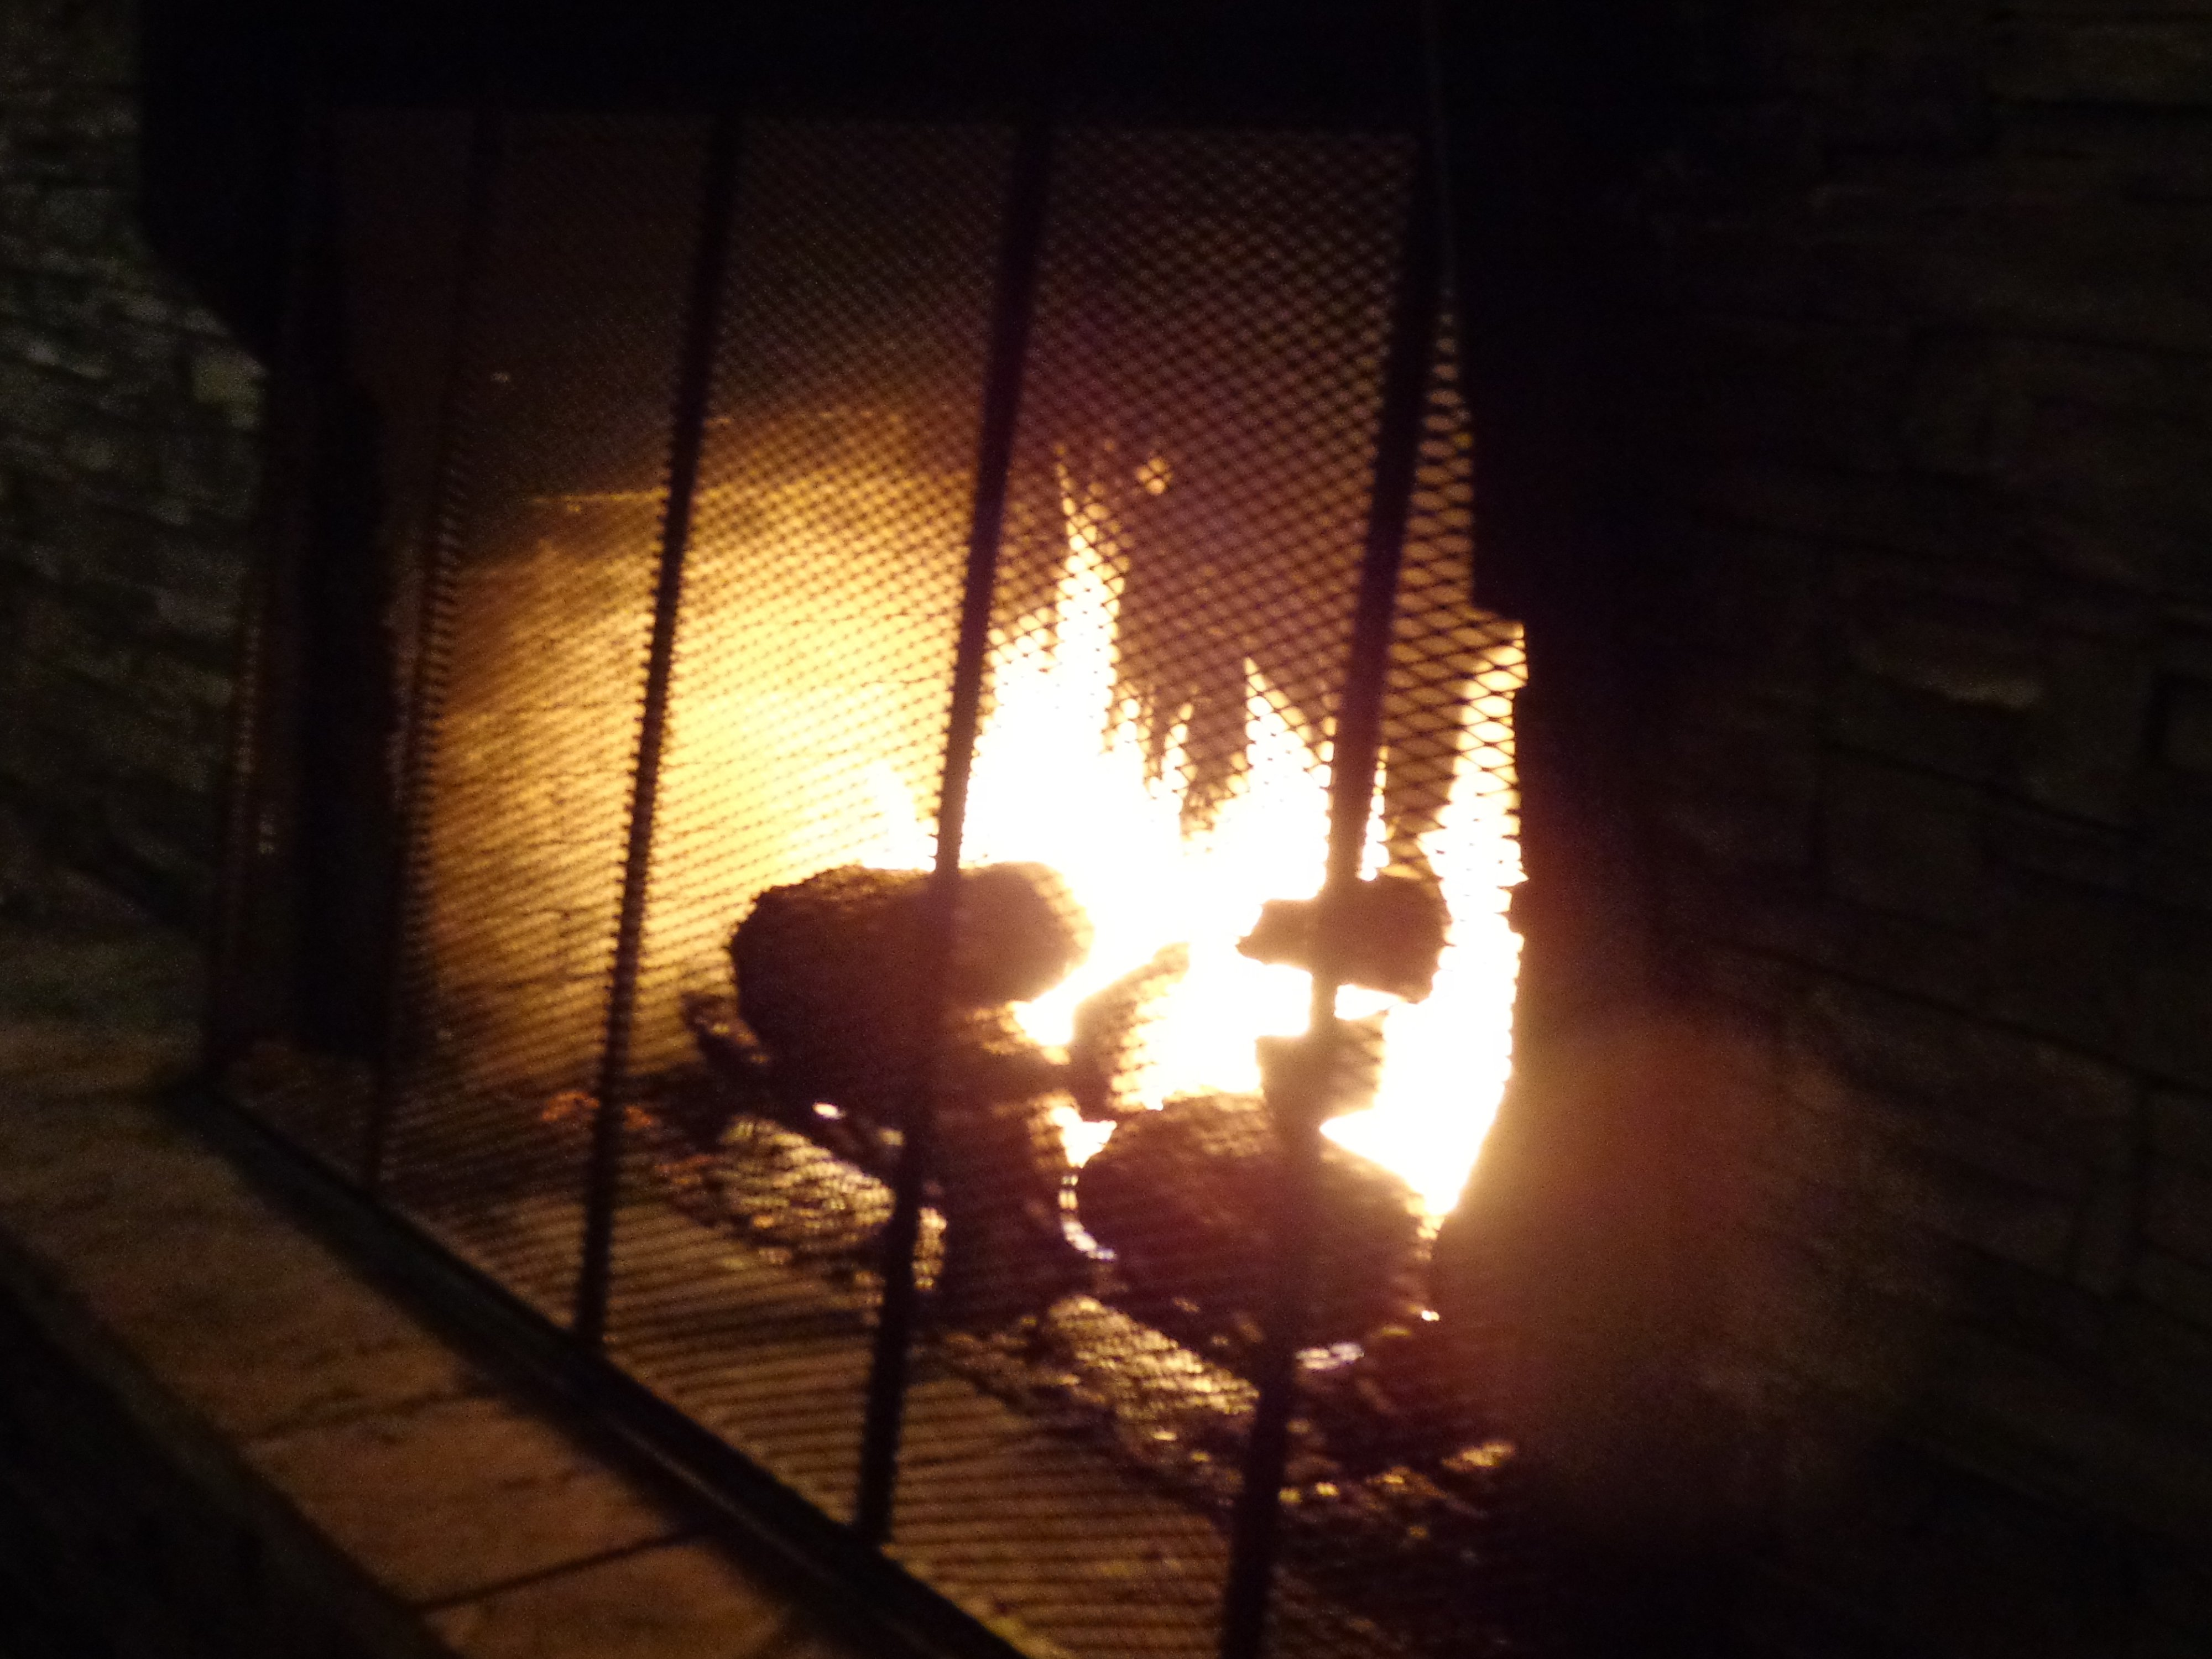 fire in fireplace picture free photograph photos public domain